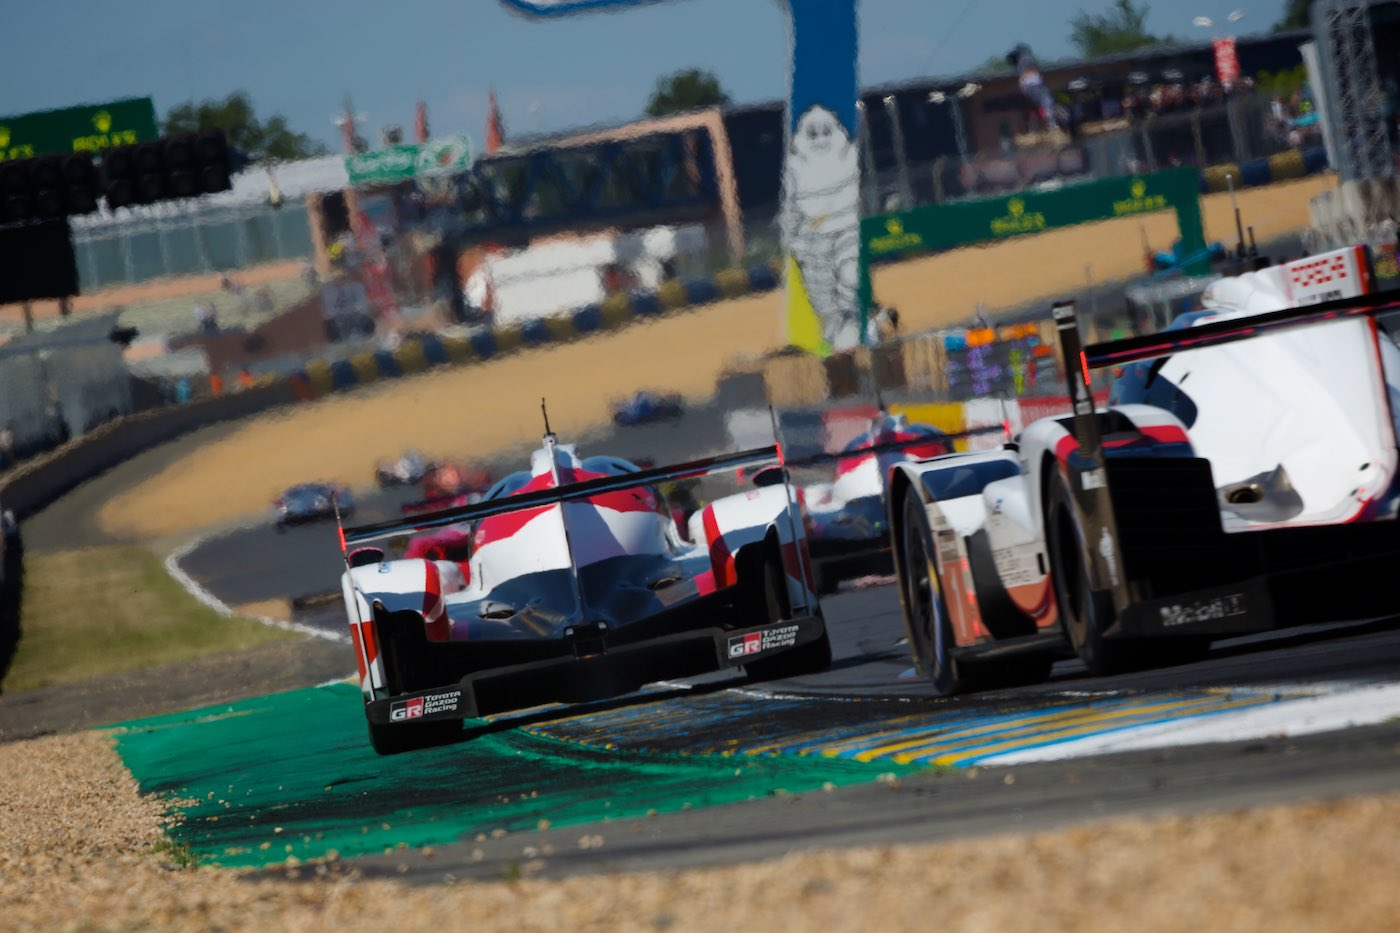 Le Mans, WEC, ELMS entry lists are out